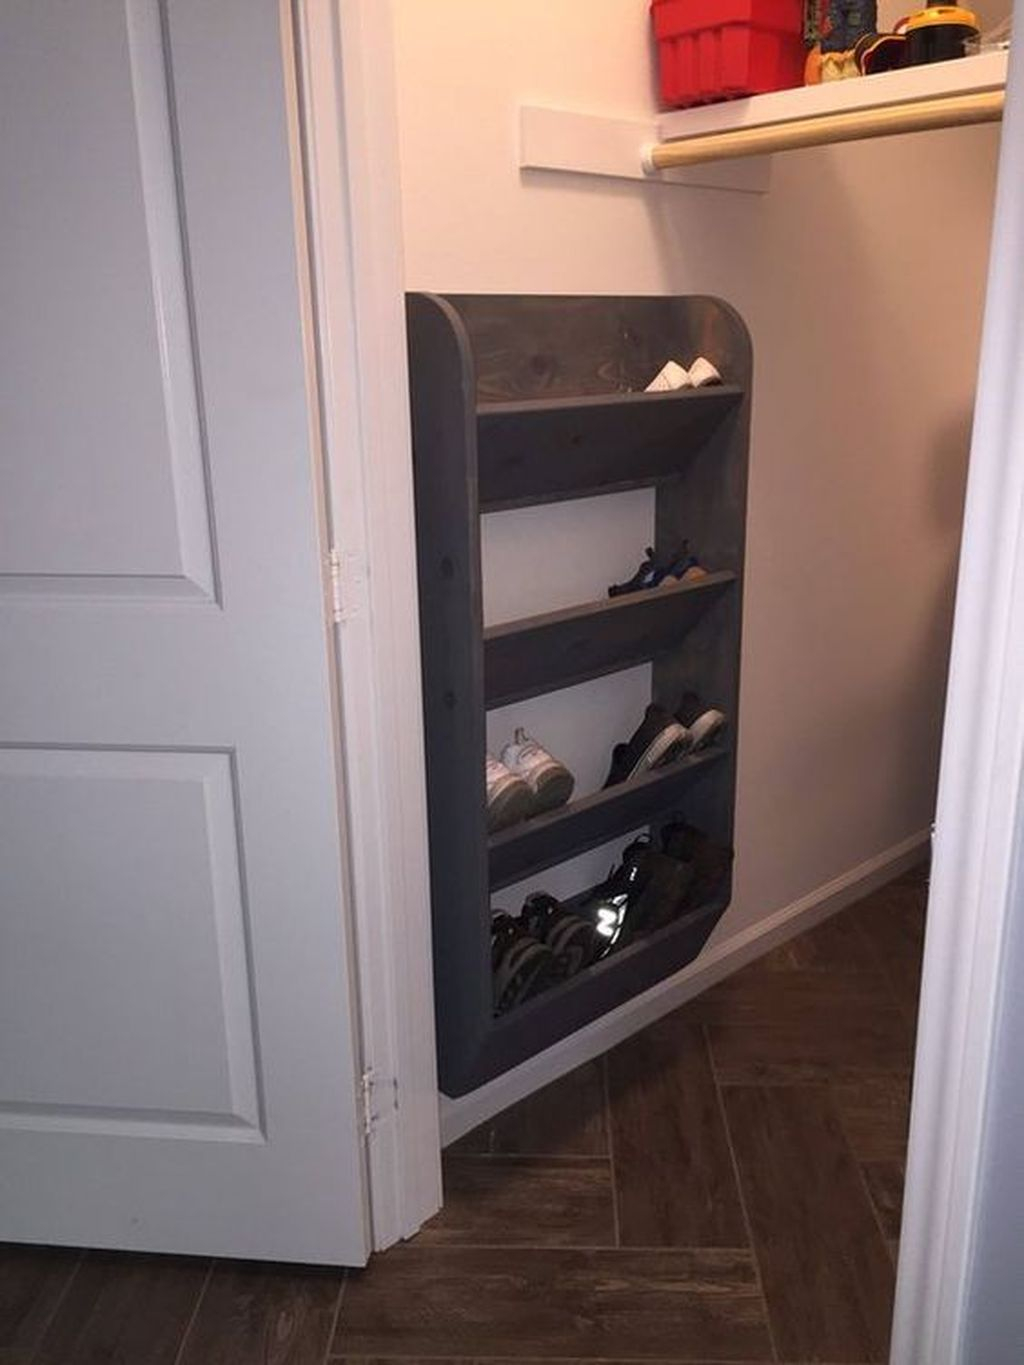 Outstanding Shoes Rack Design Ideas For Your Home26